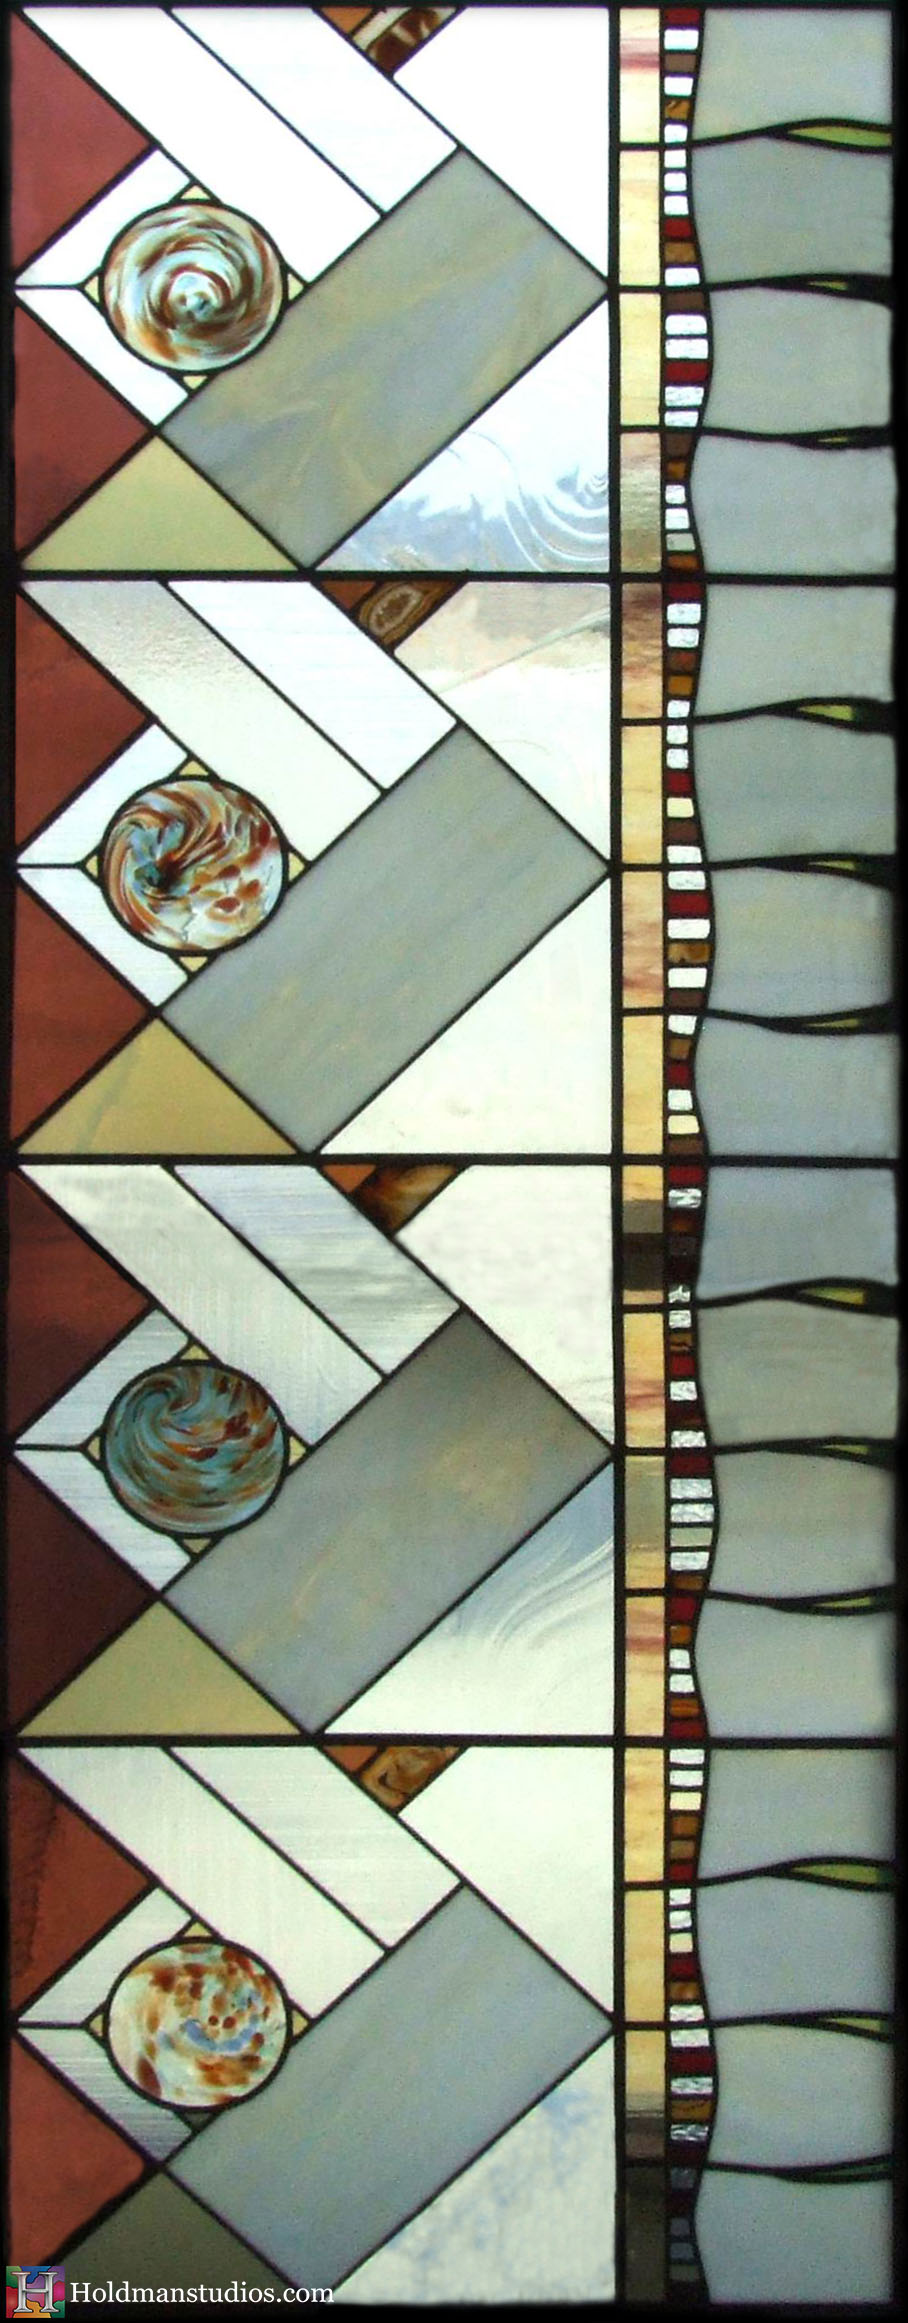 Holdman-Studios-Stained-Hand-Blown-Glass-Door-Window-Circles-Triangles-Squares-Rectangles.jpg